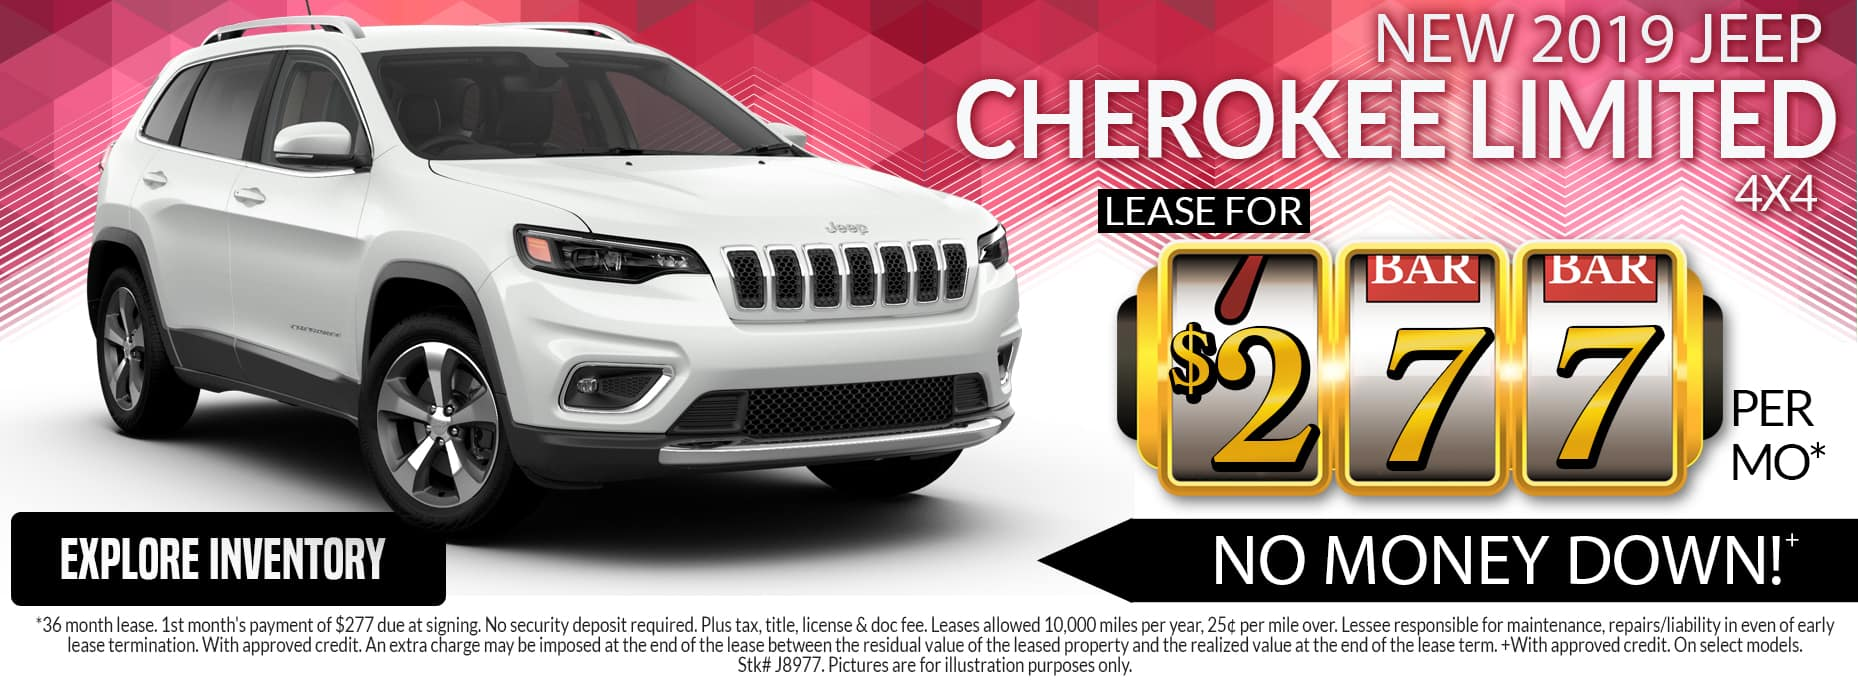 St. Chales 2019 Jeep Cherokee